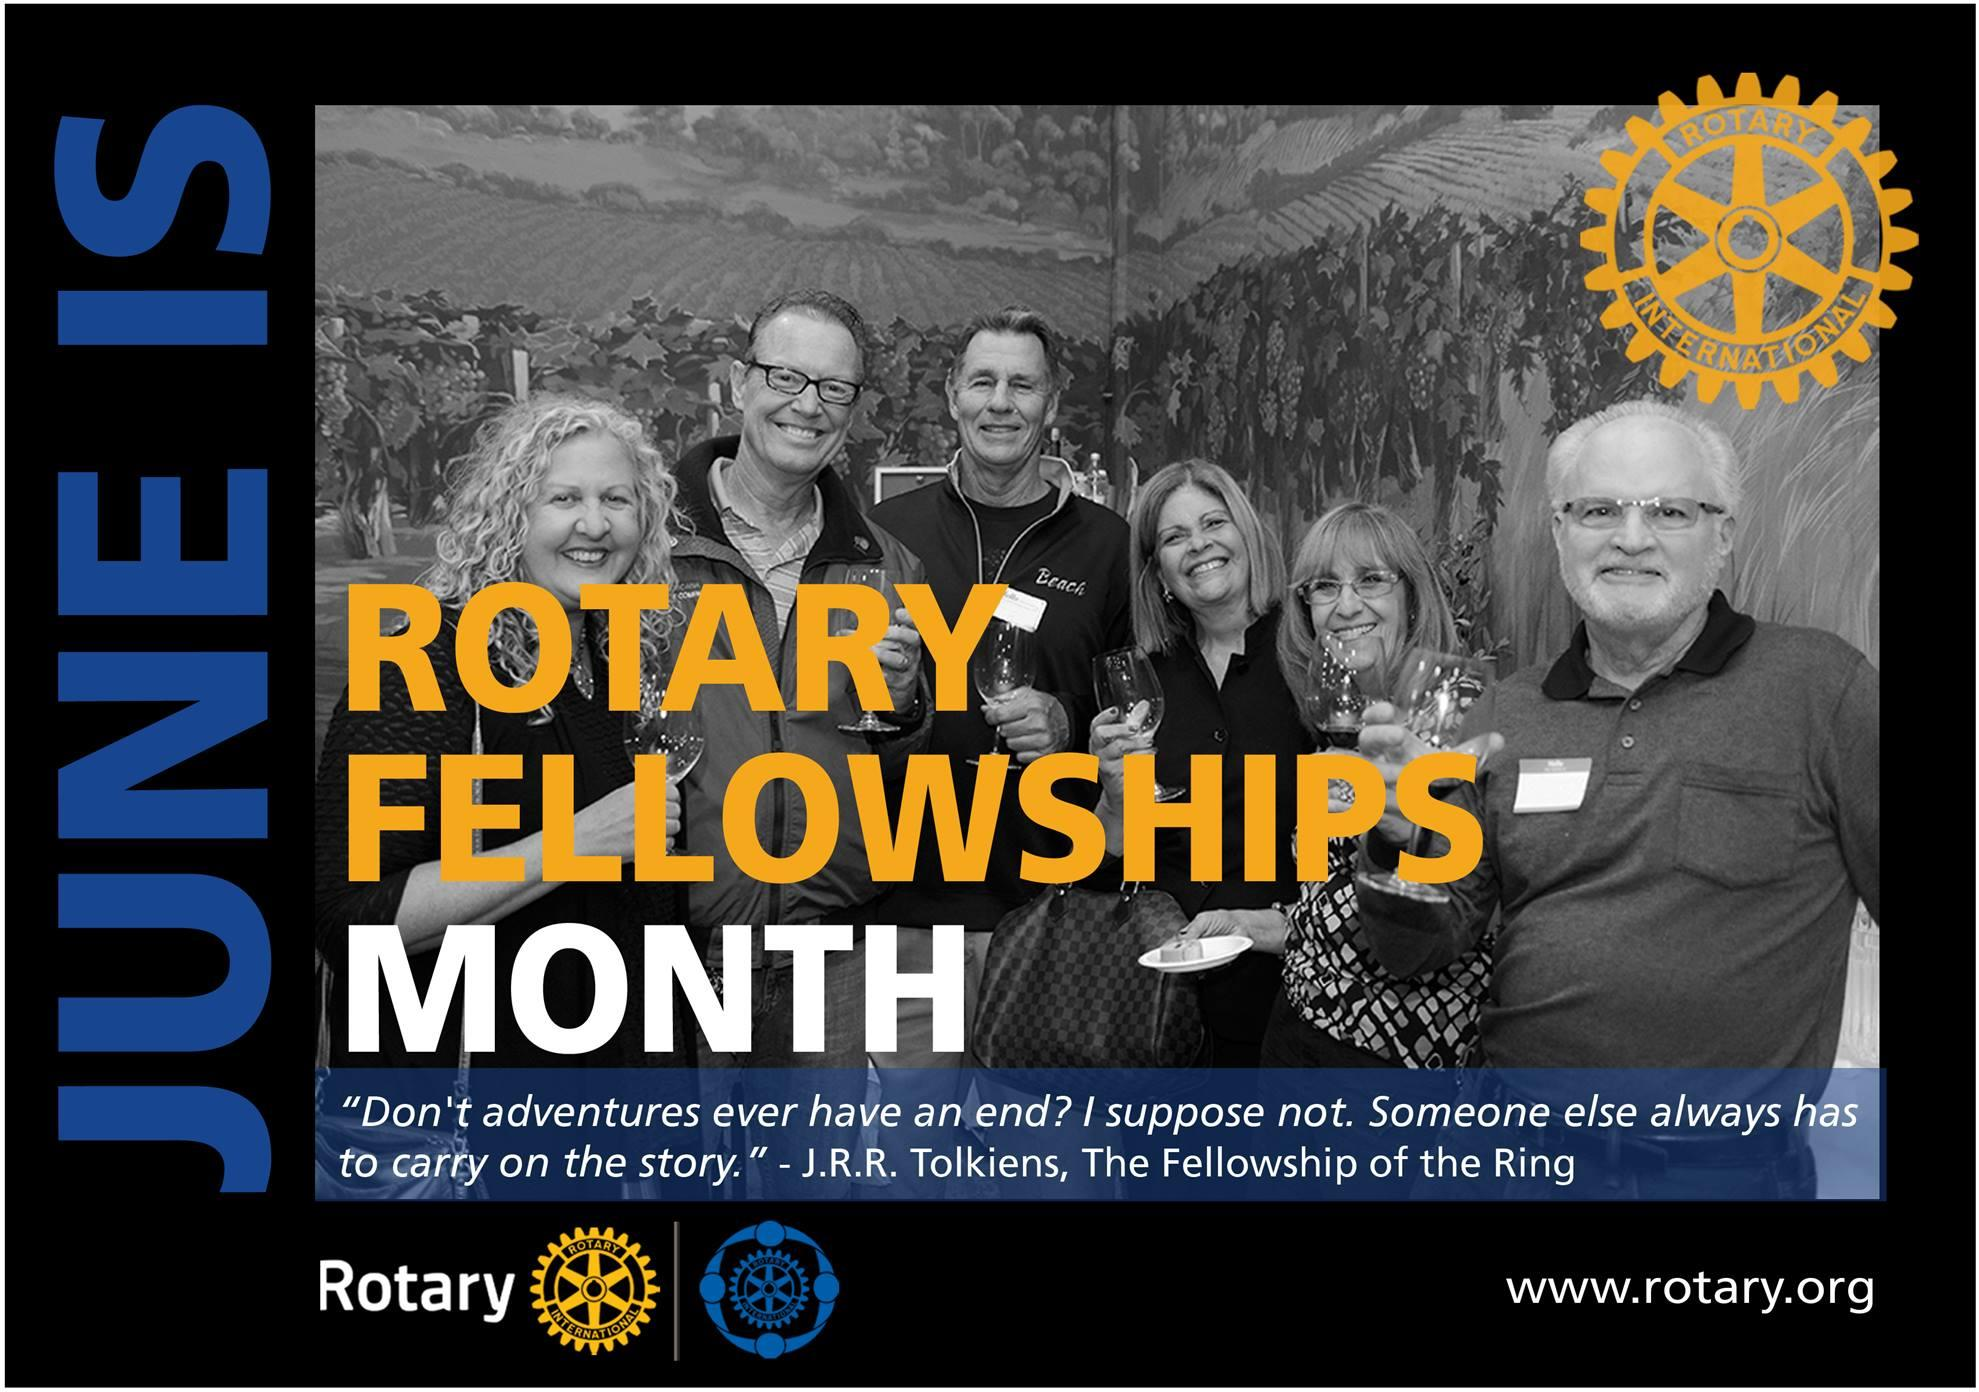 Rotary Fellowship Month